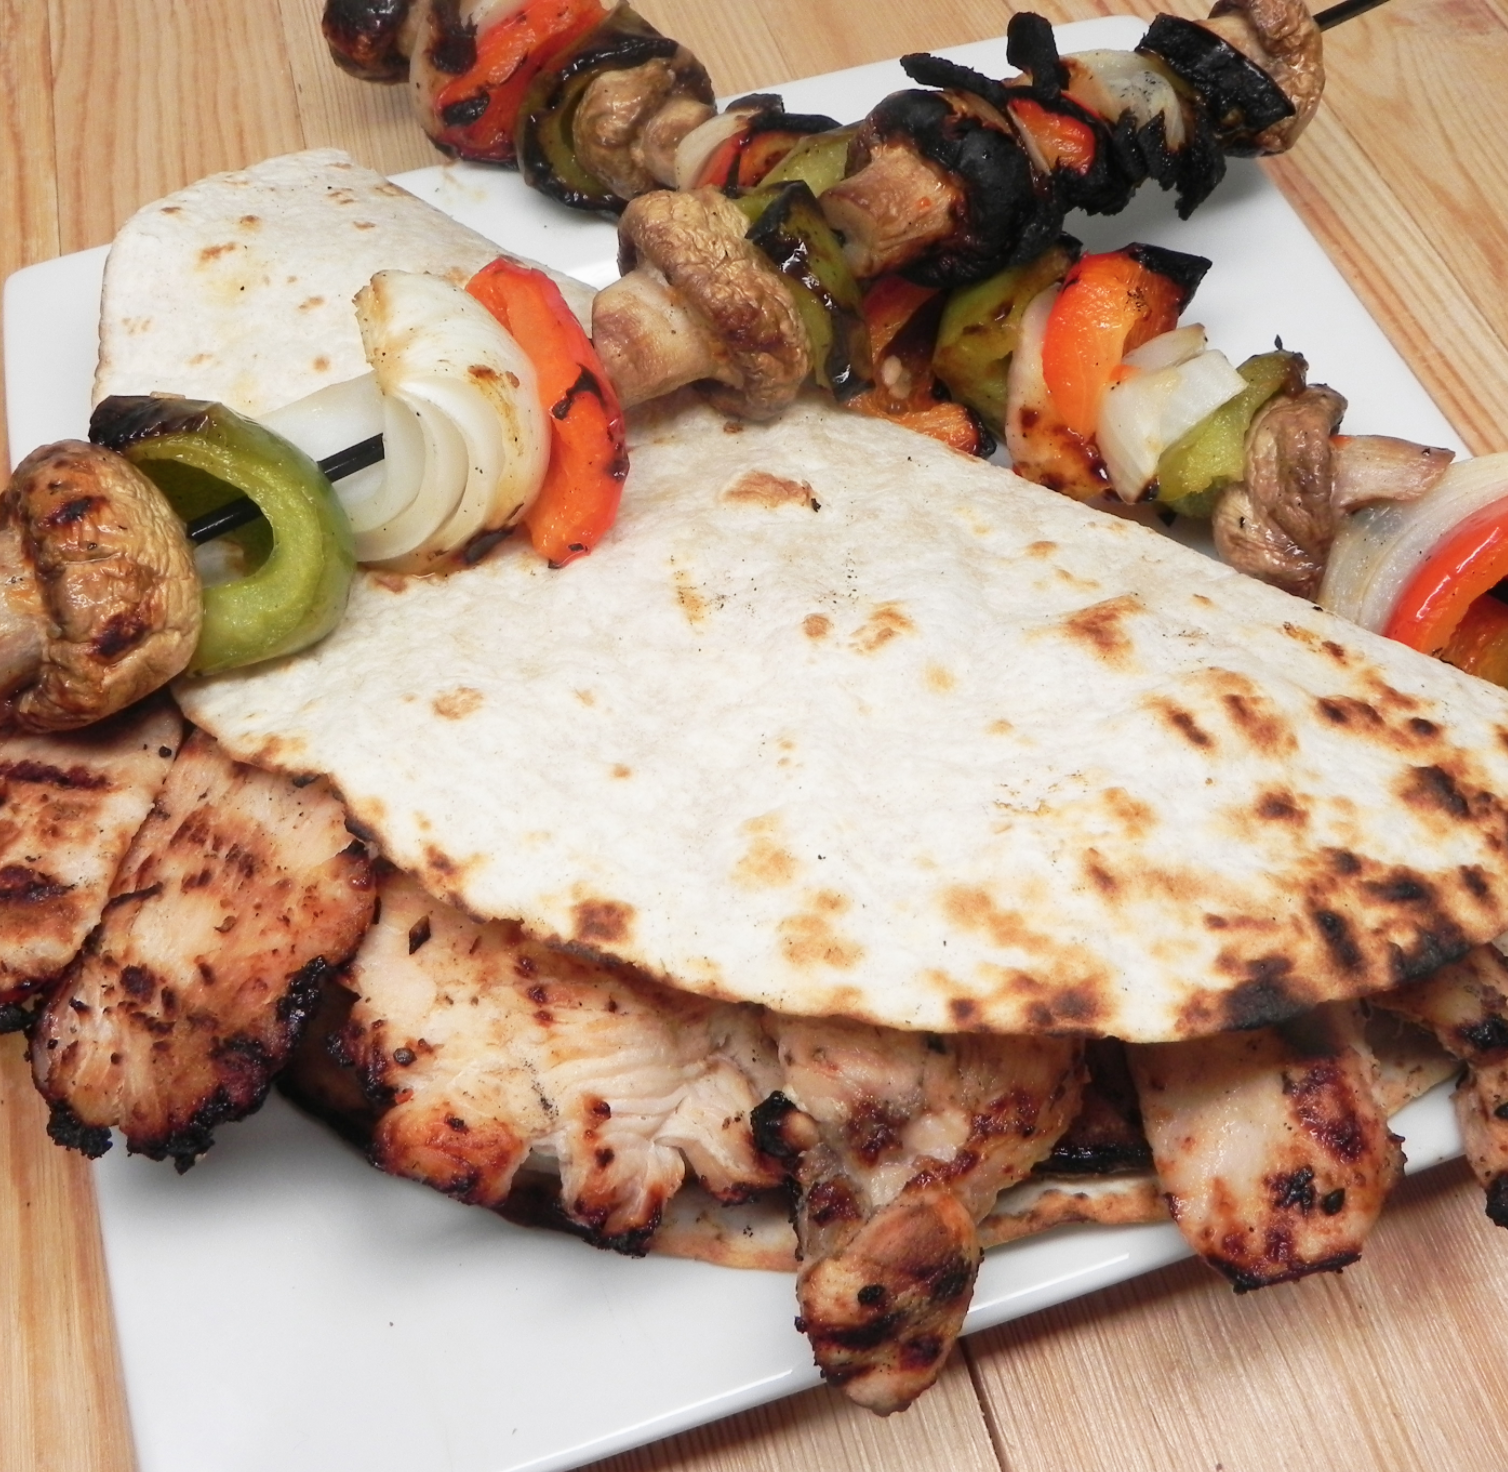 Grilled Tequila-Lime Chicken Fajitas